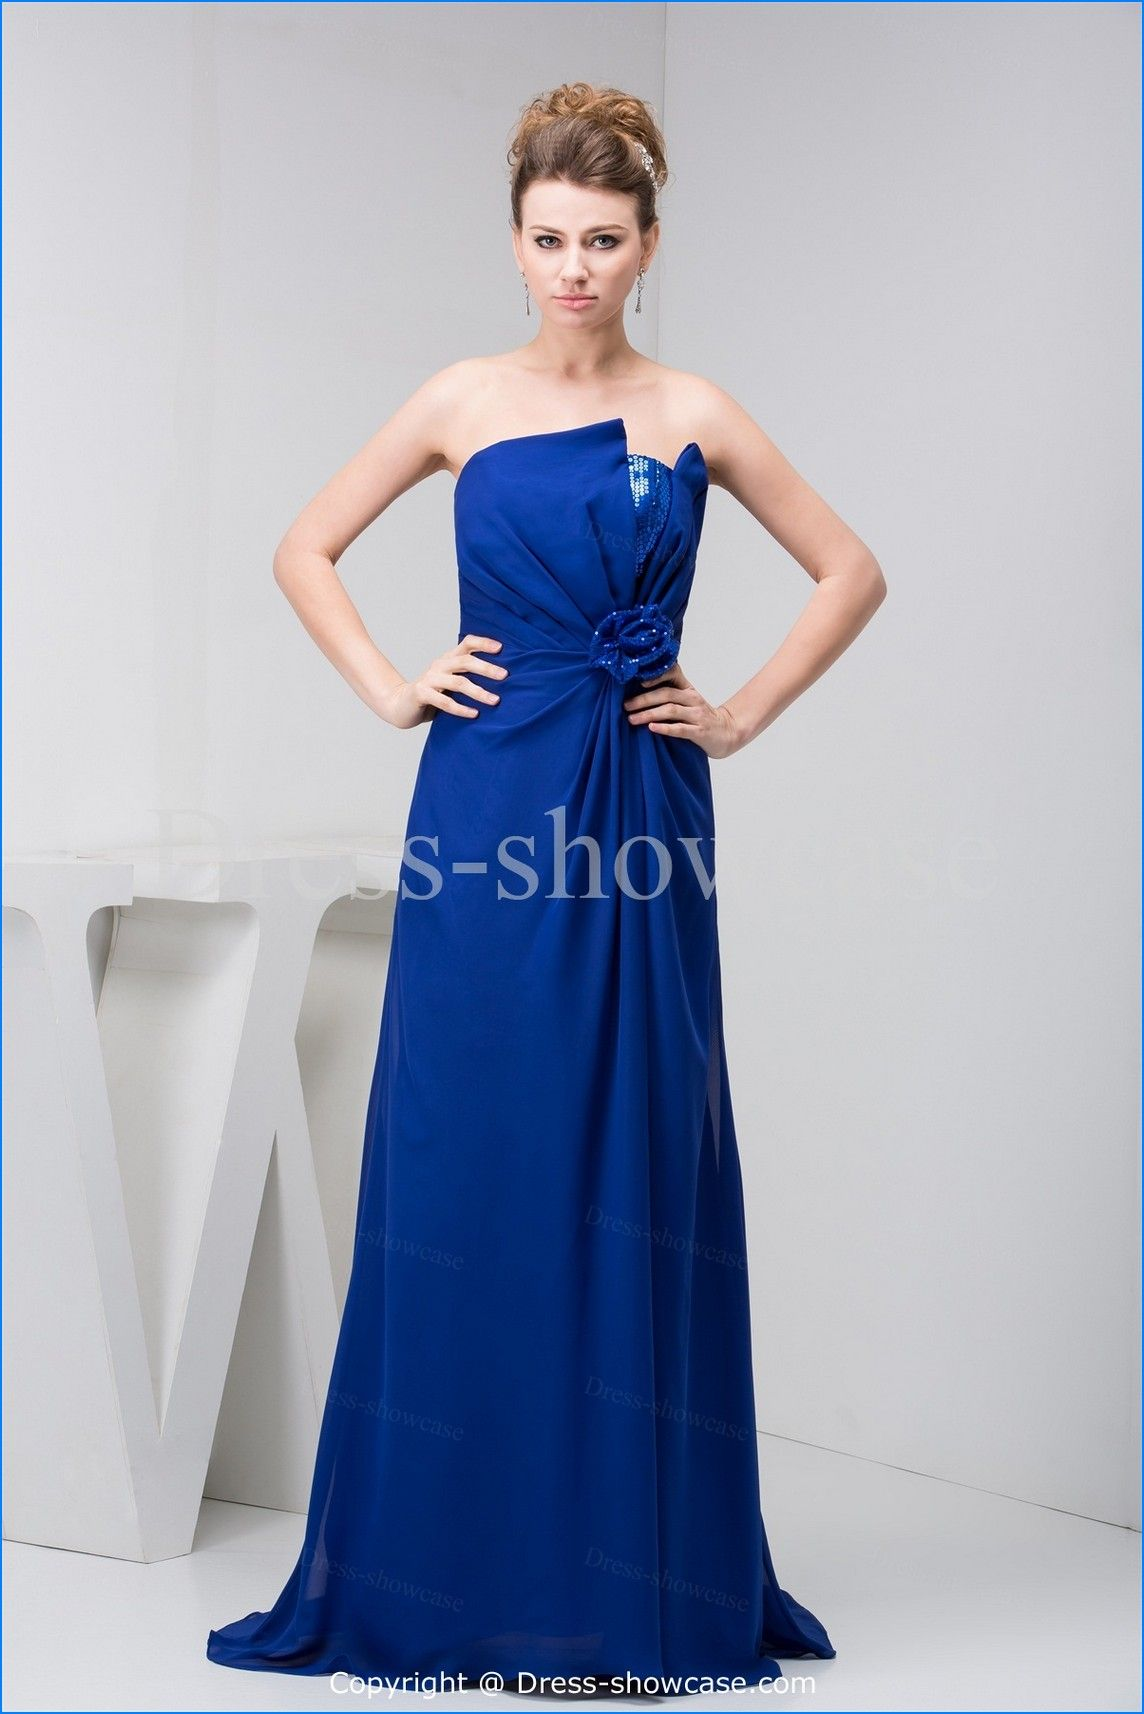 Royal Blue And Silver Wedding Dresses My wedding colors